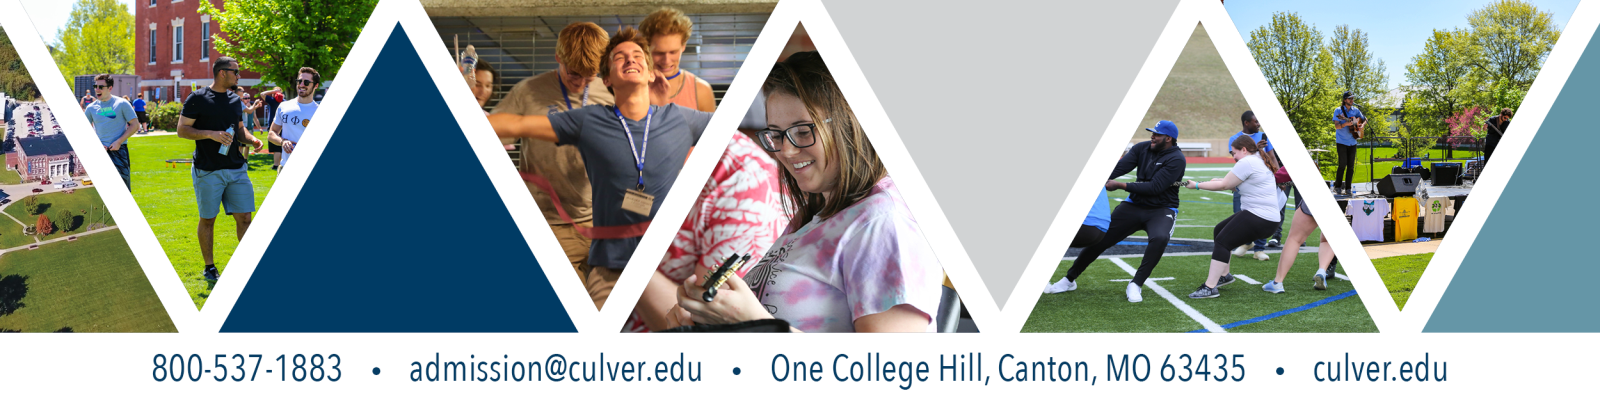 573-288-6000 admission@culver.edu One College Hill, Canton, MO 63435 culver.edu